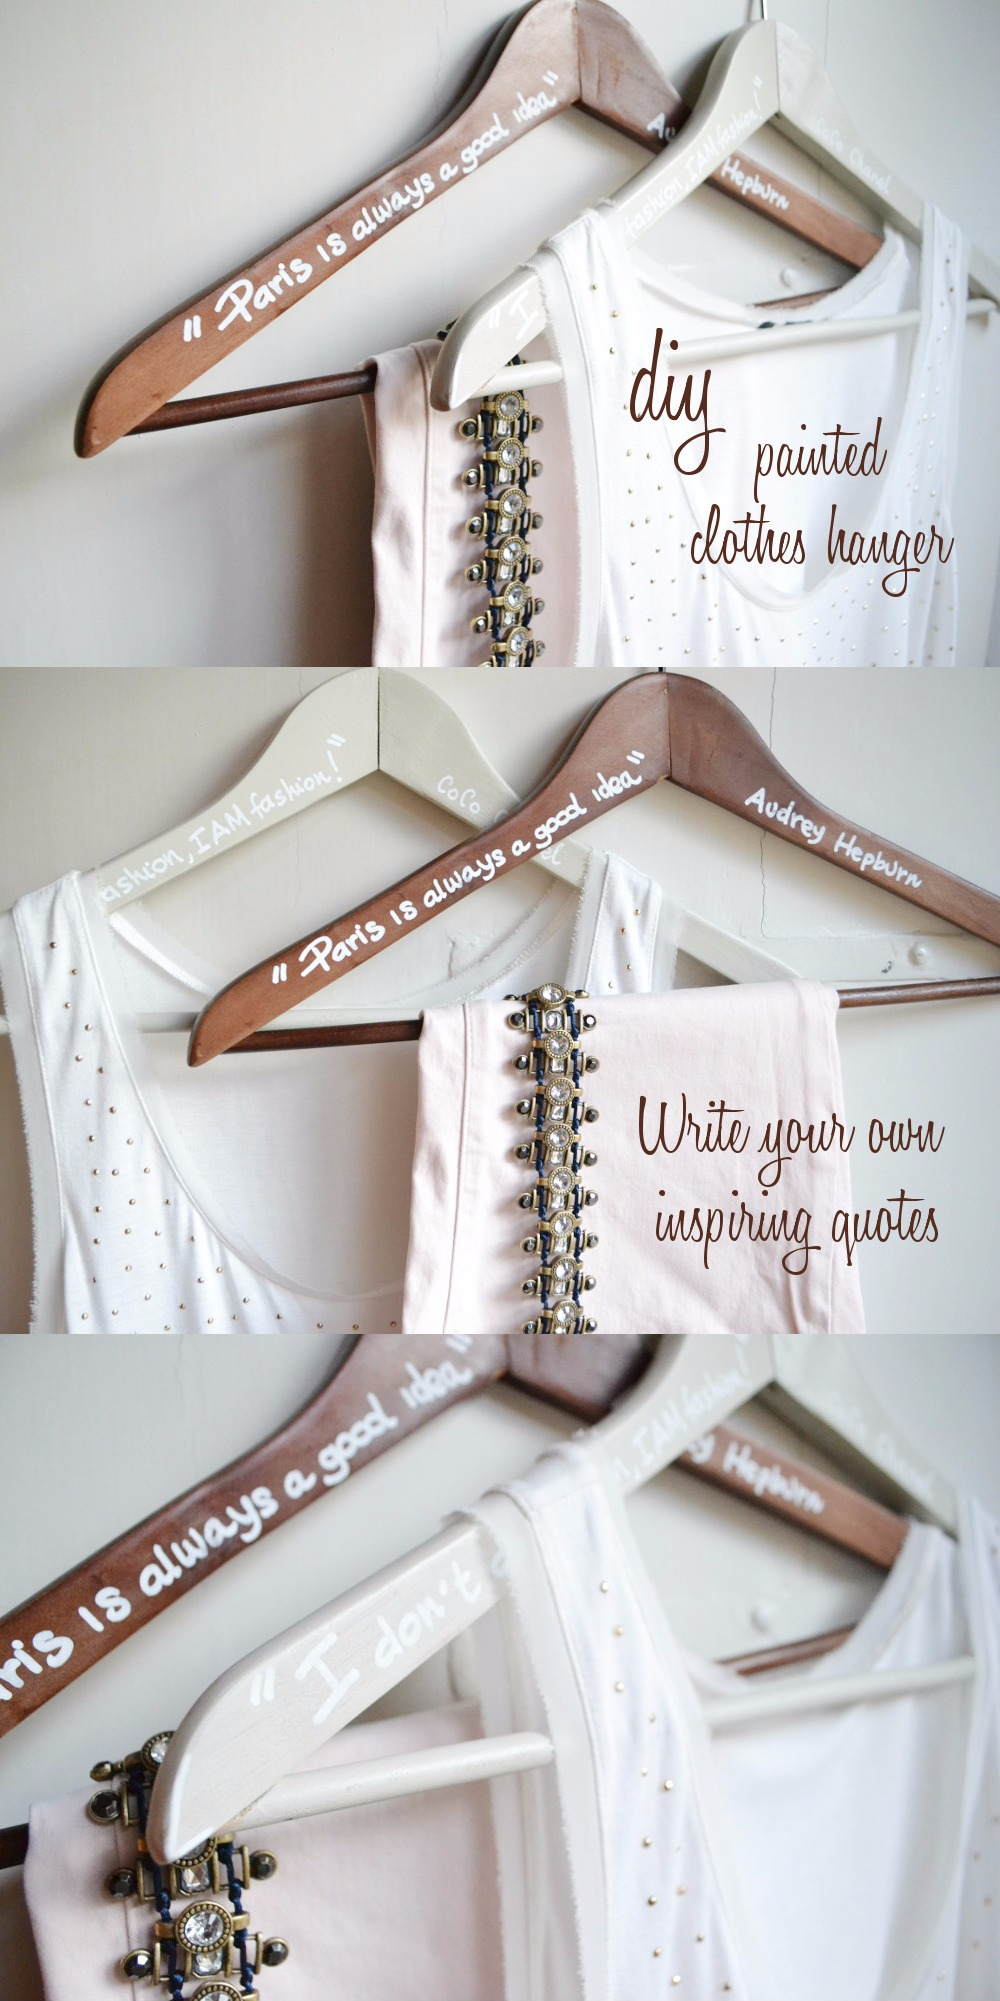 DIY Printed Clothes Hanger